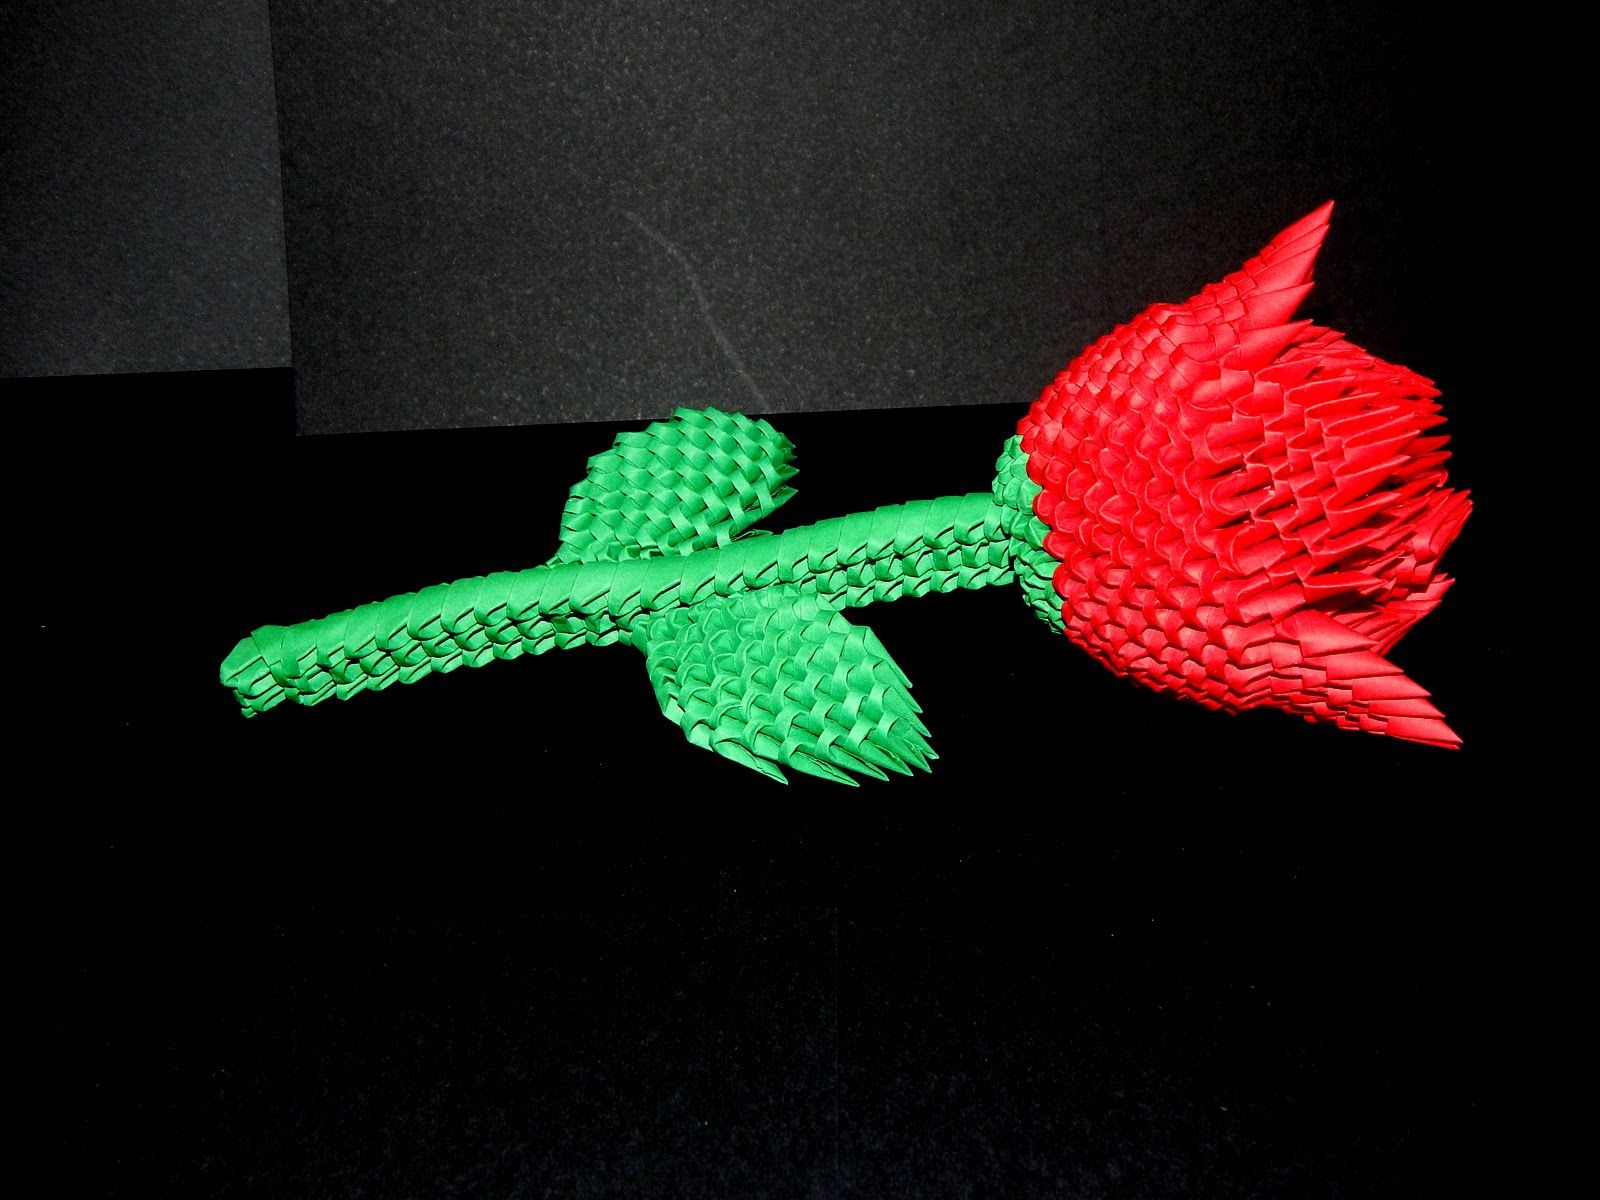 How to make 3d origami Rose part1 | ORIGAMI 3D | Origami ... - photo#43